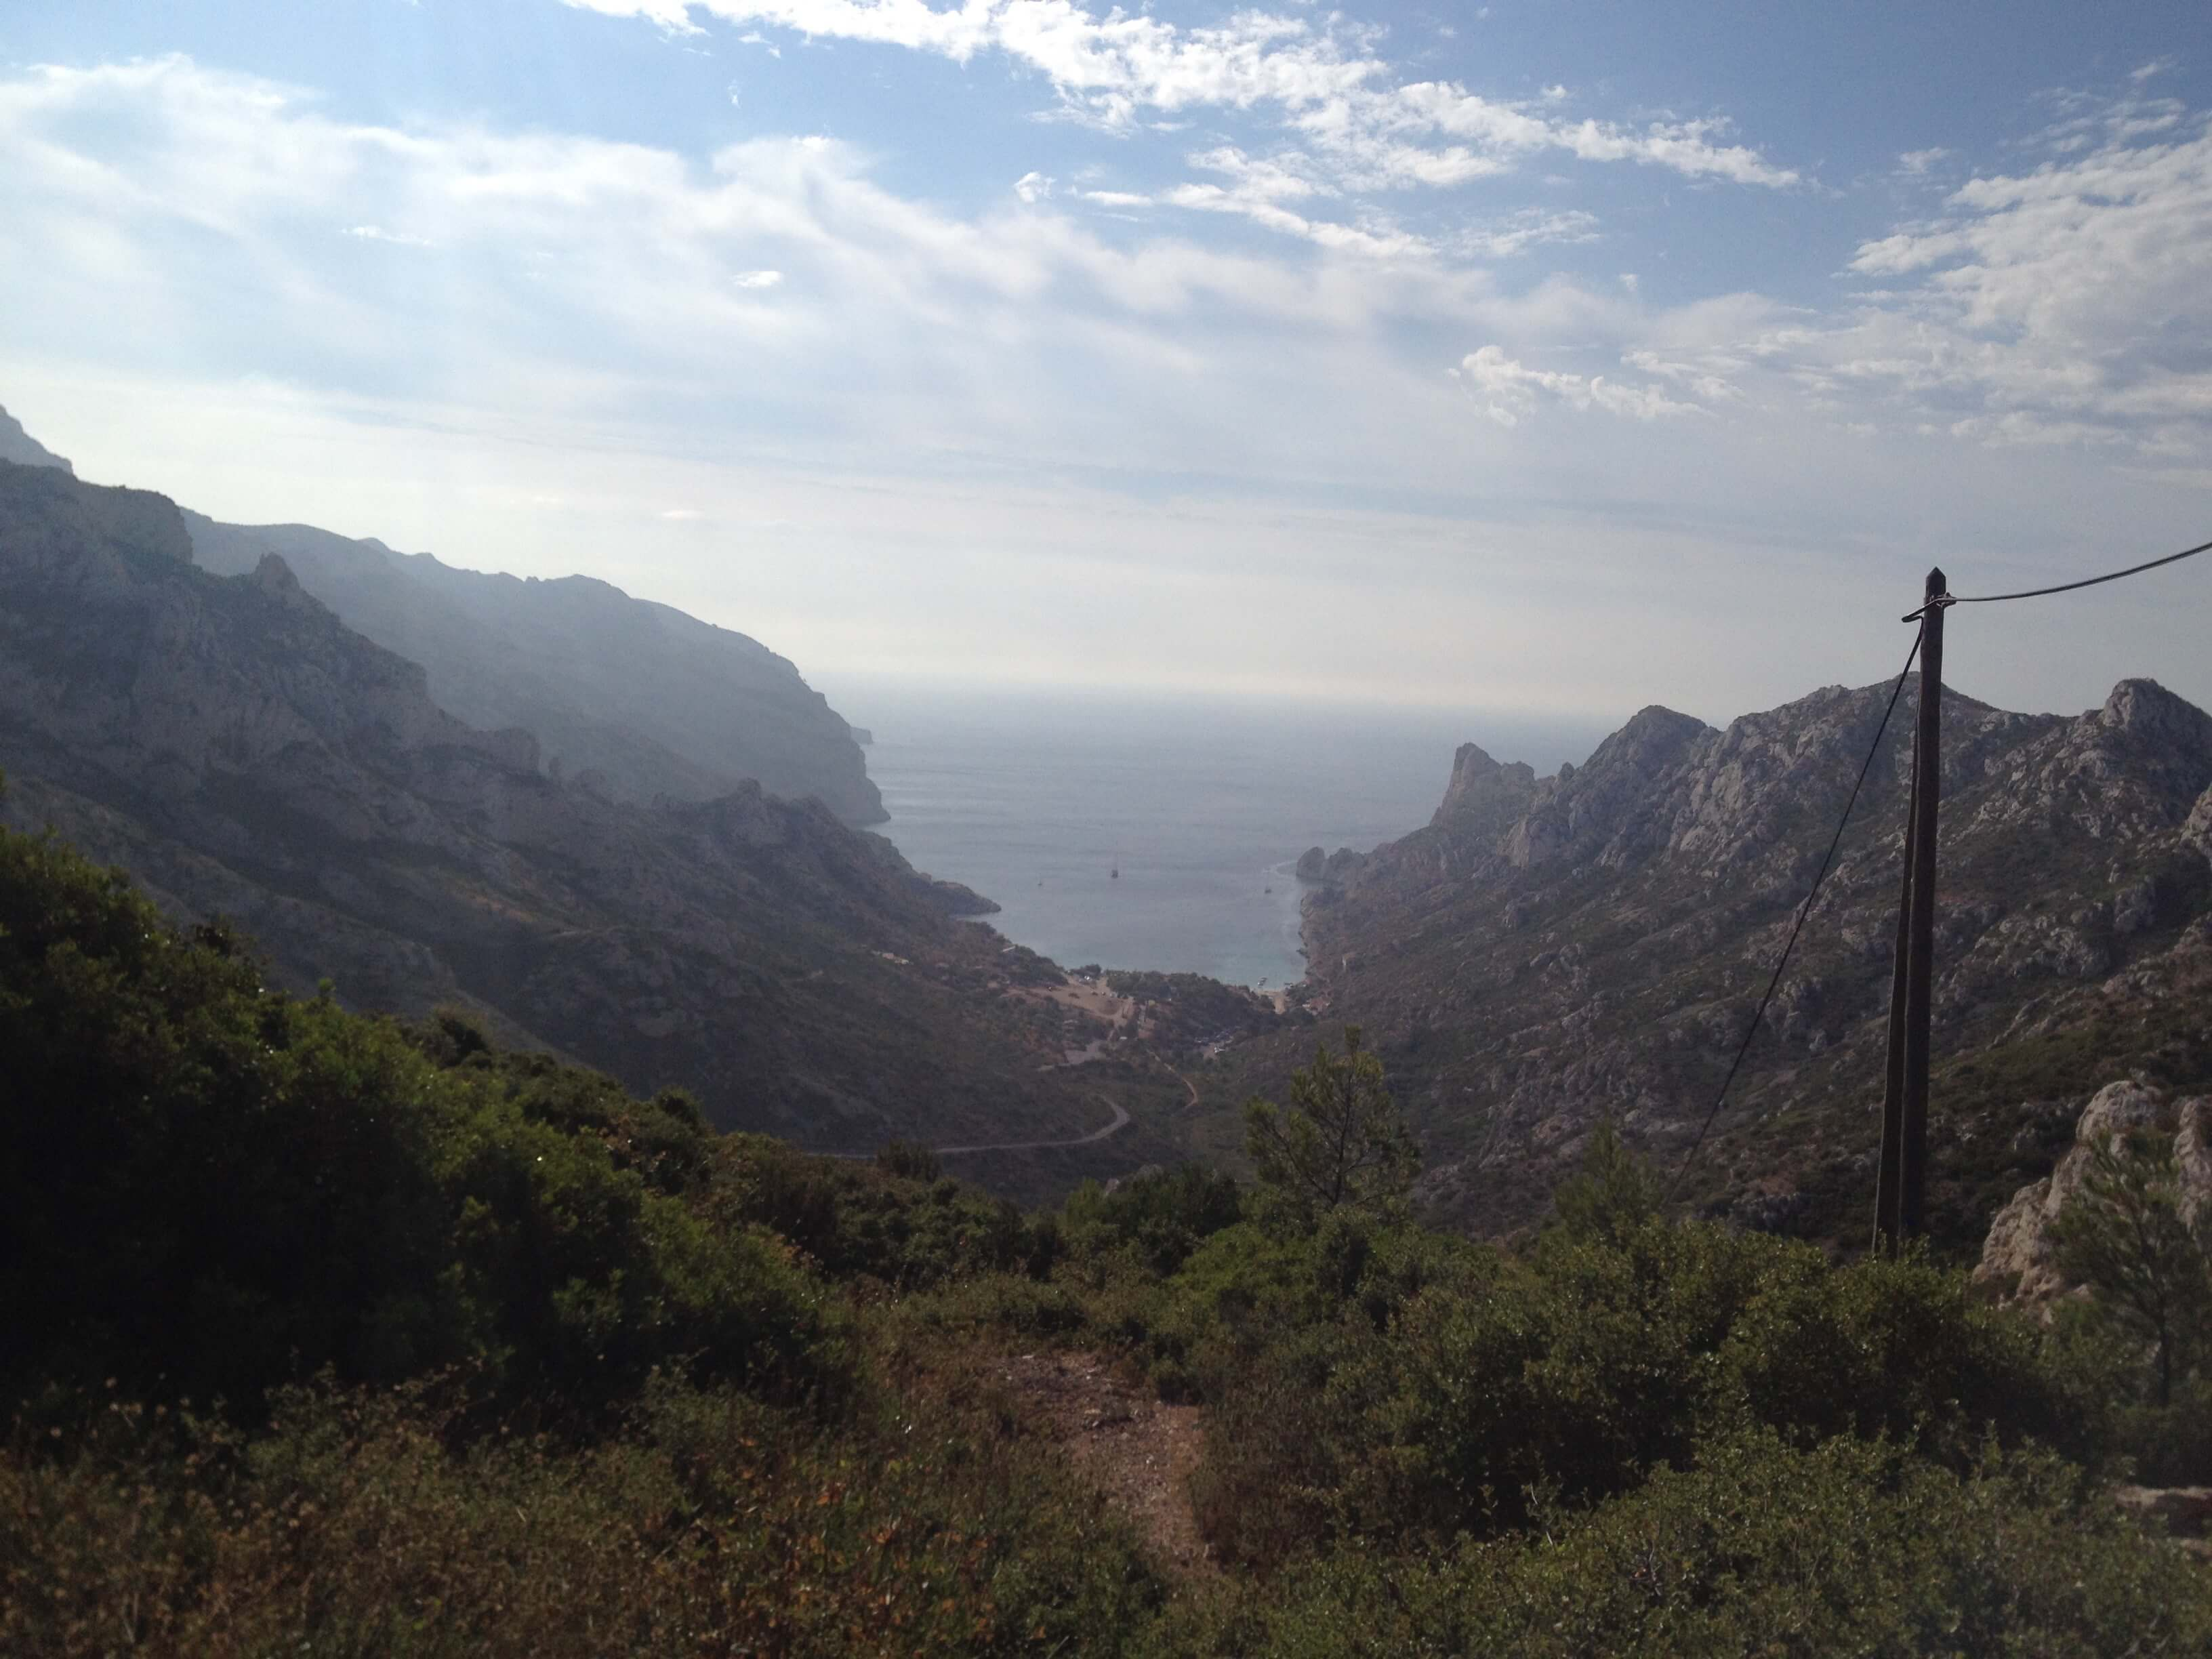 And on the other side... the view looking down the mountain that we had to hike to get to the water. Calanque de Sormiou is ahead of us...